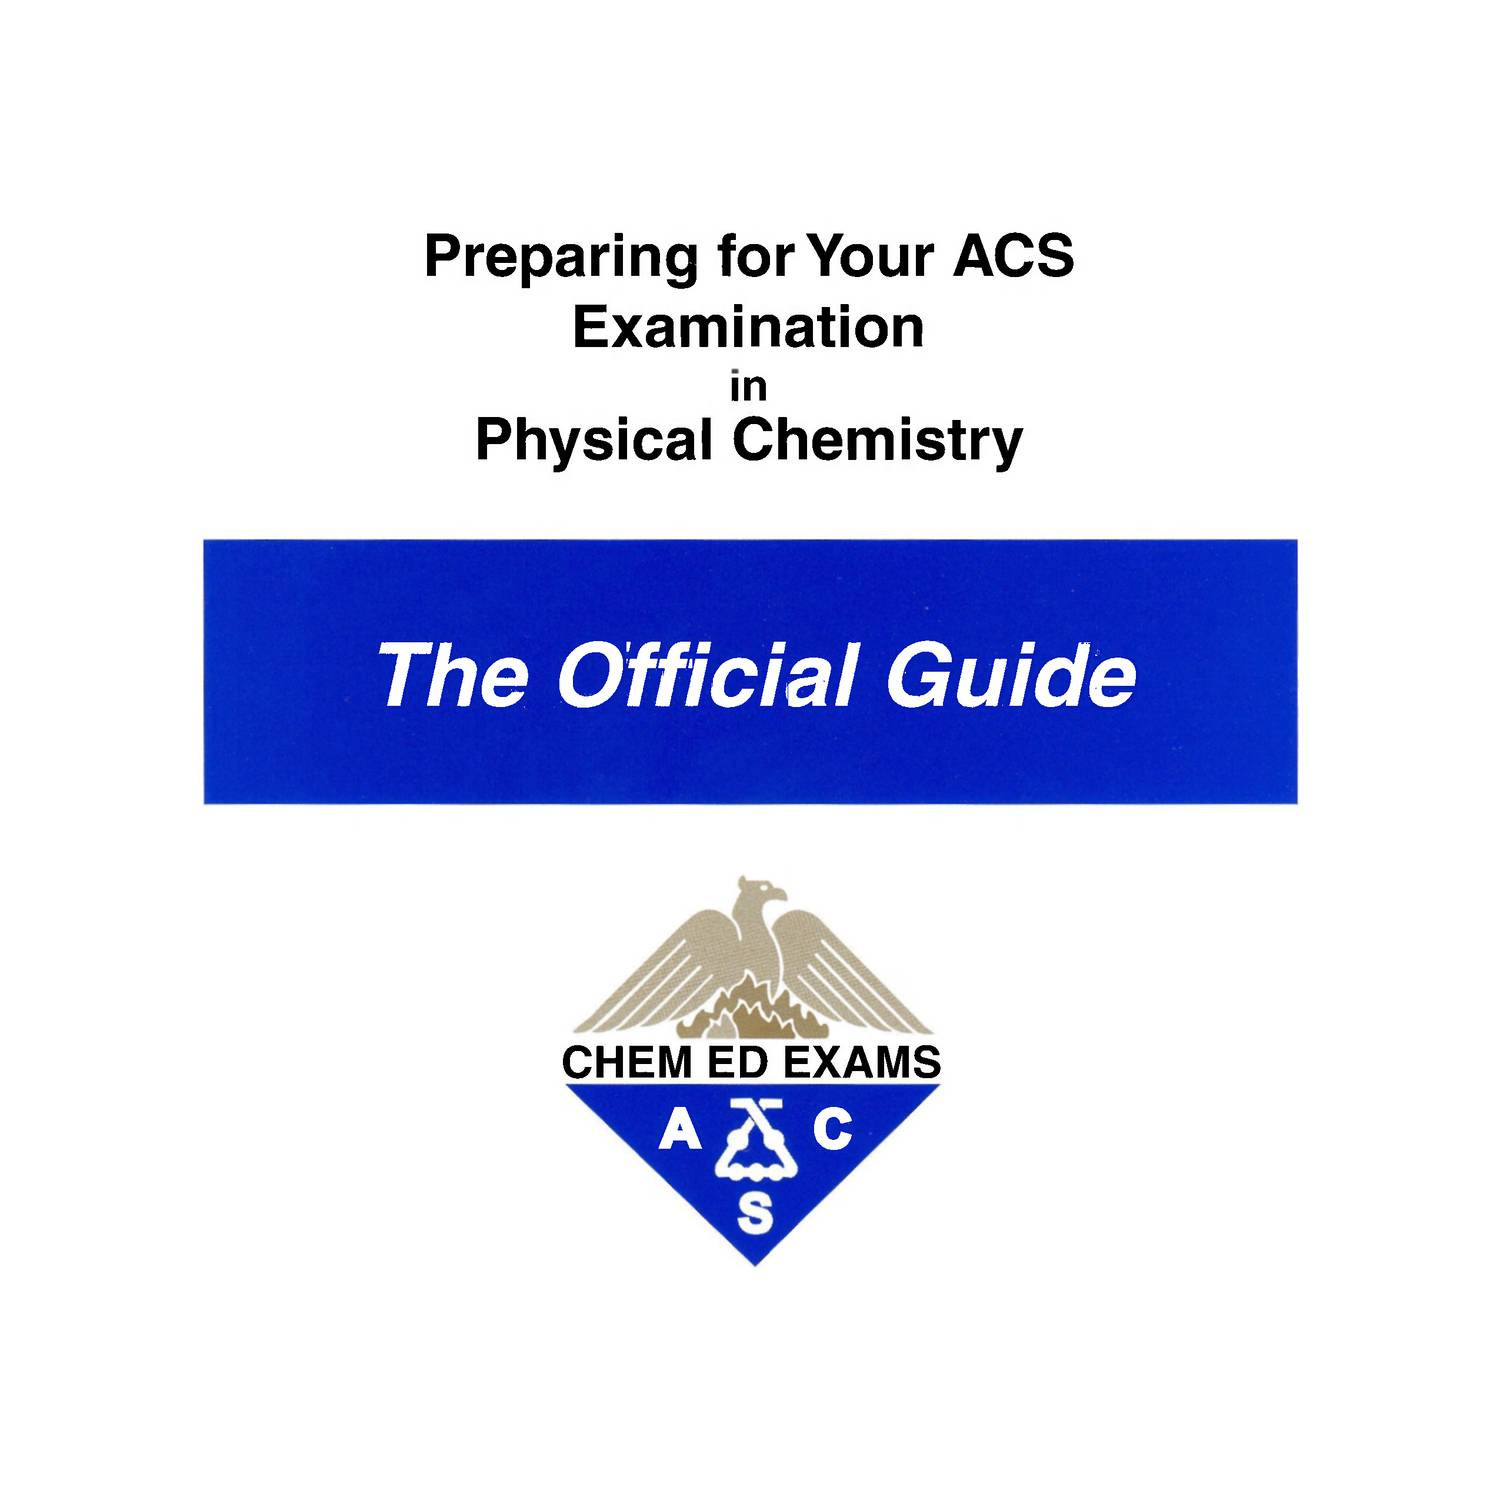 Physical Chemistry Exam Study Guide - American Chemical Society, 2009.pdf |  DocDroid